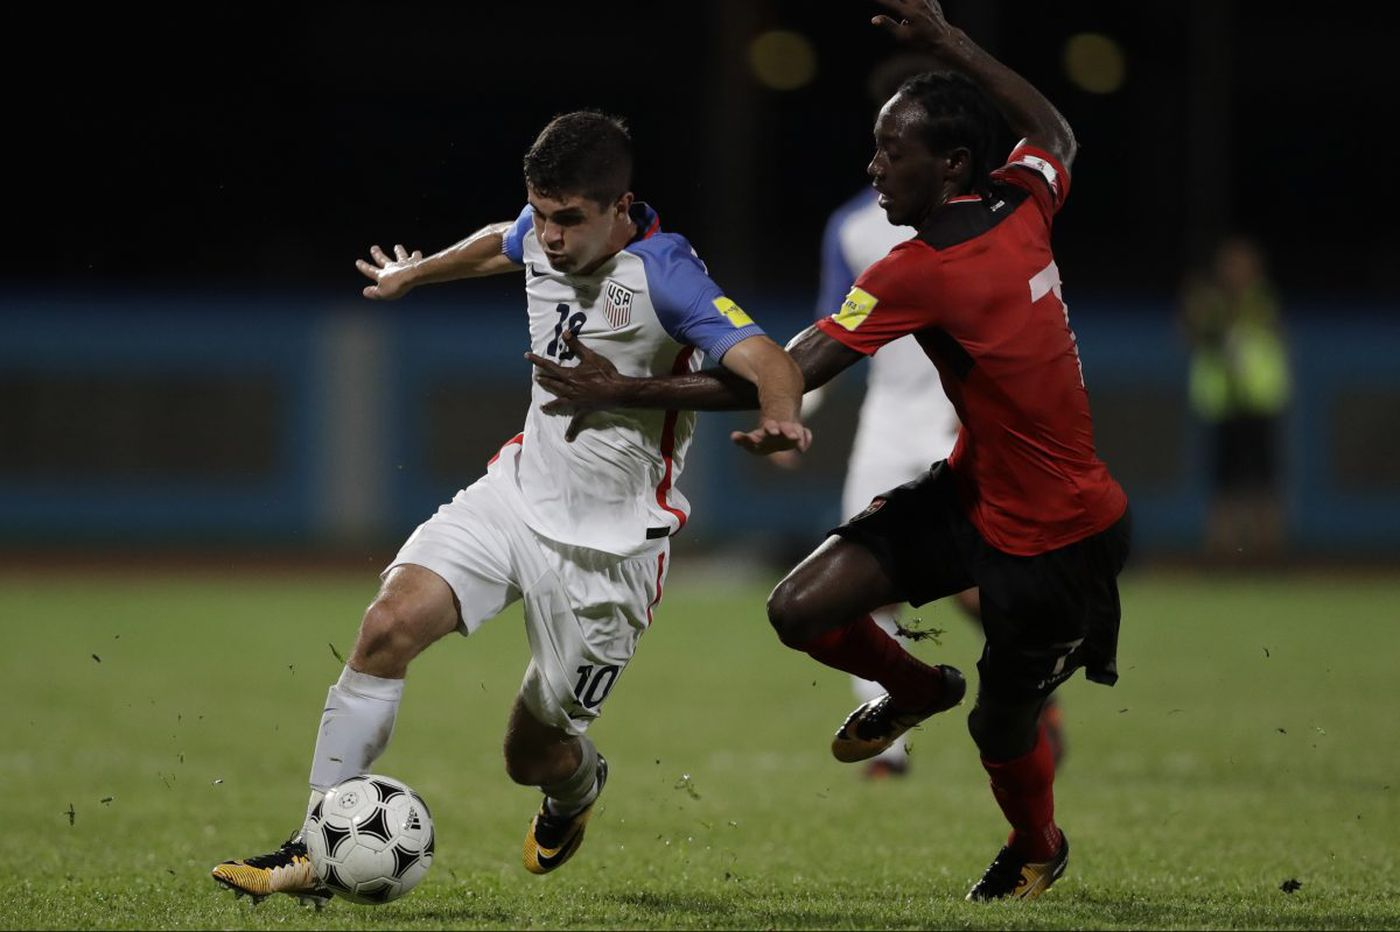 Christian Pulisic, Josh Sargent to be on U.S. men's national soccer team vs. Bolivia in Chester